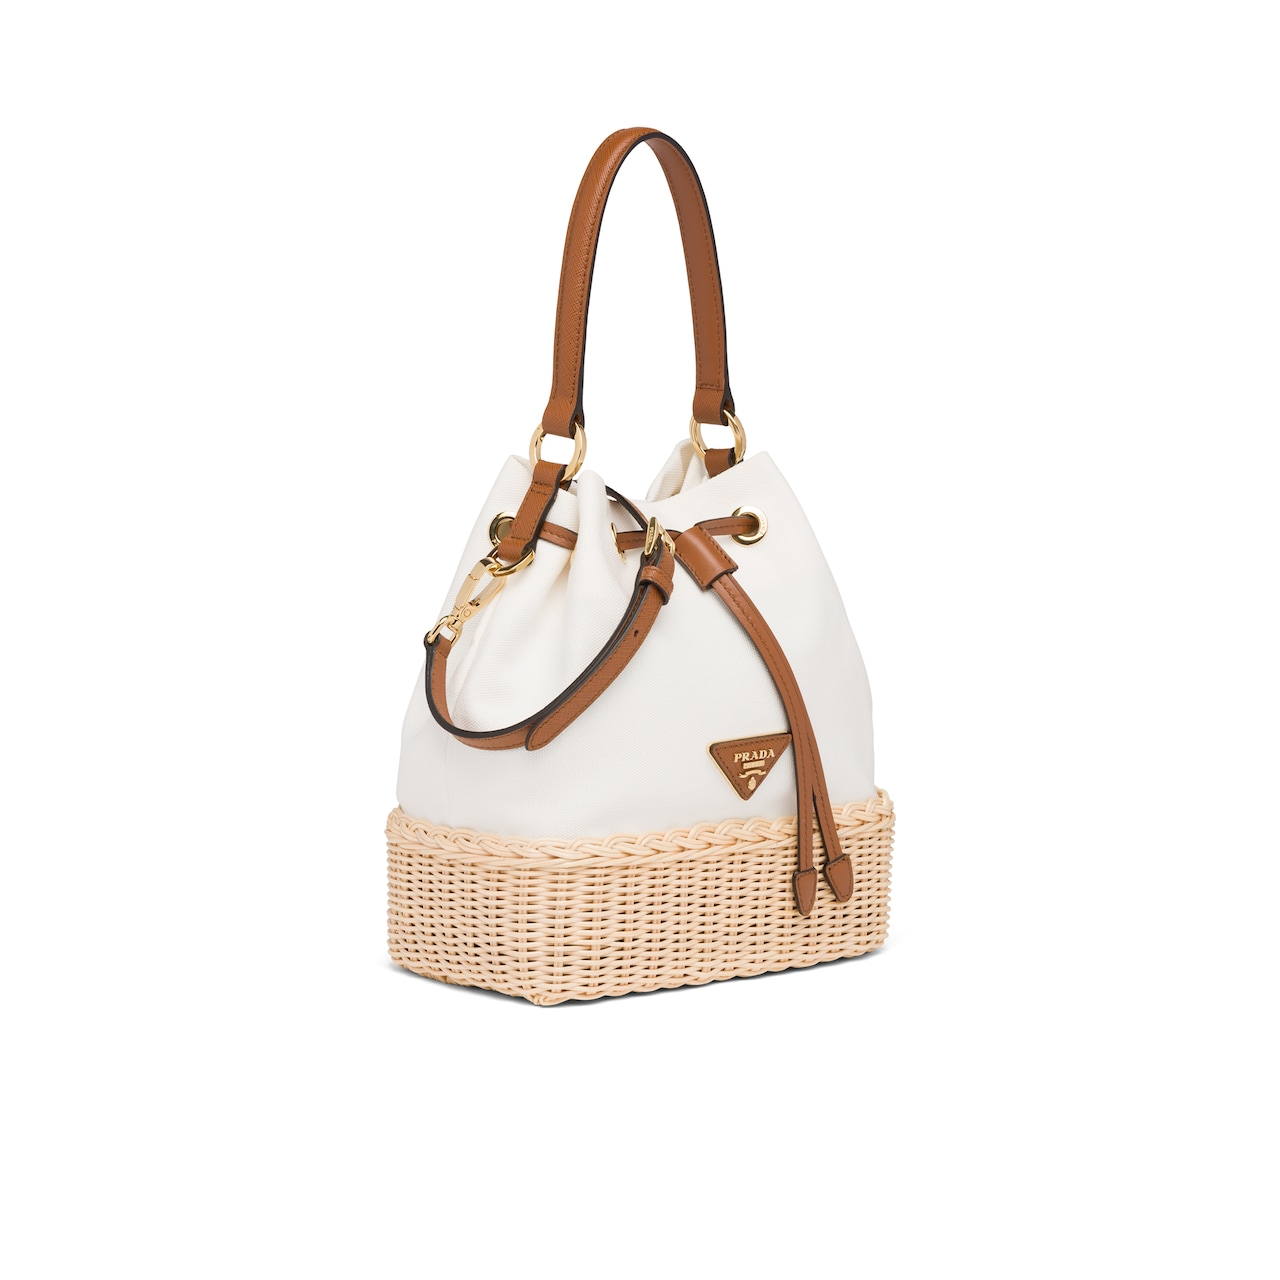 Prada Prada Plage wicker and canvas bucket bag 3